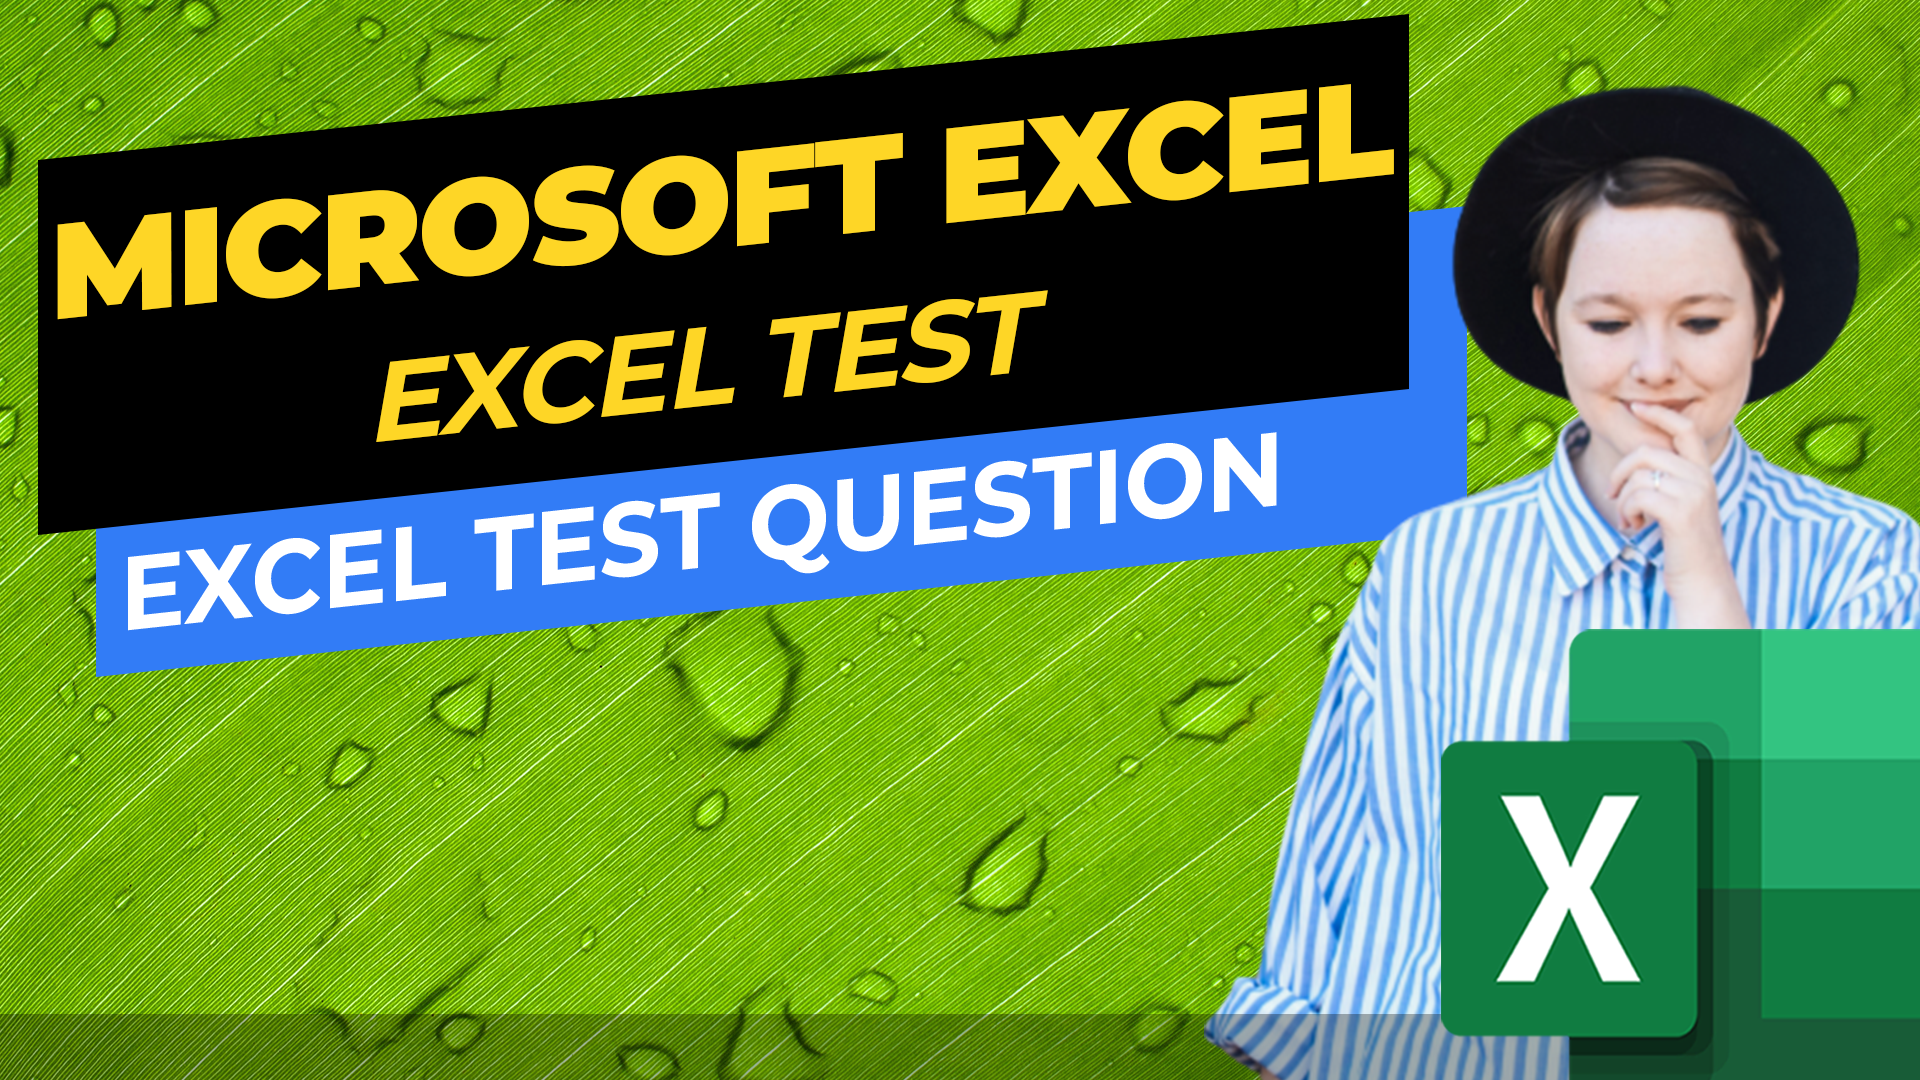 Test Excel Knowledge - Excel Test Question - What is Most Likely the Explanation for the Green Rectangles in Column C